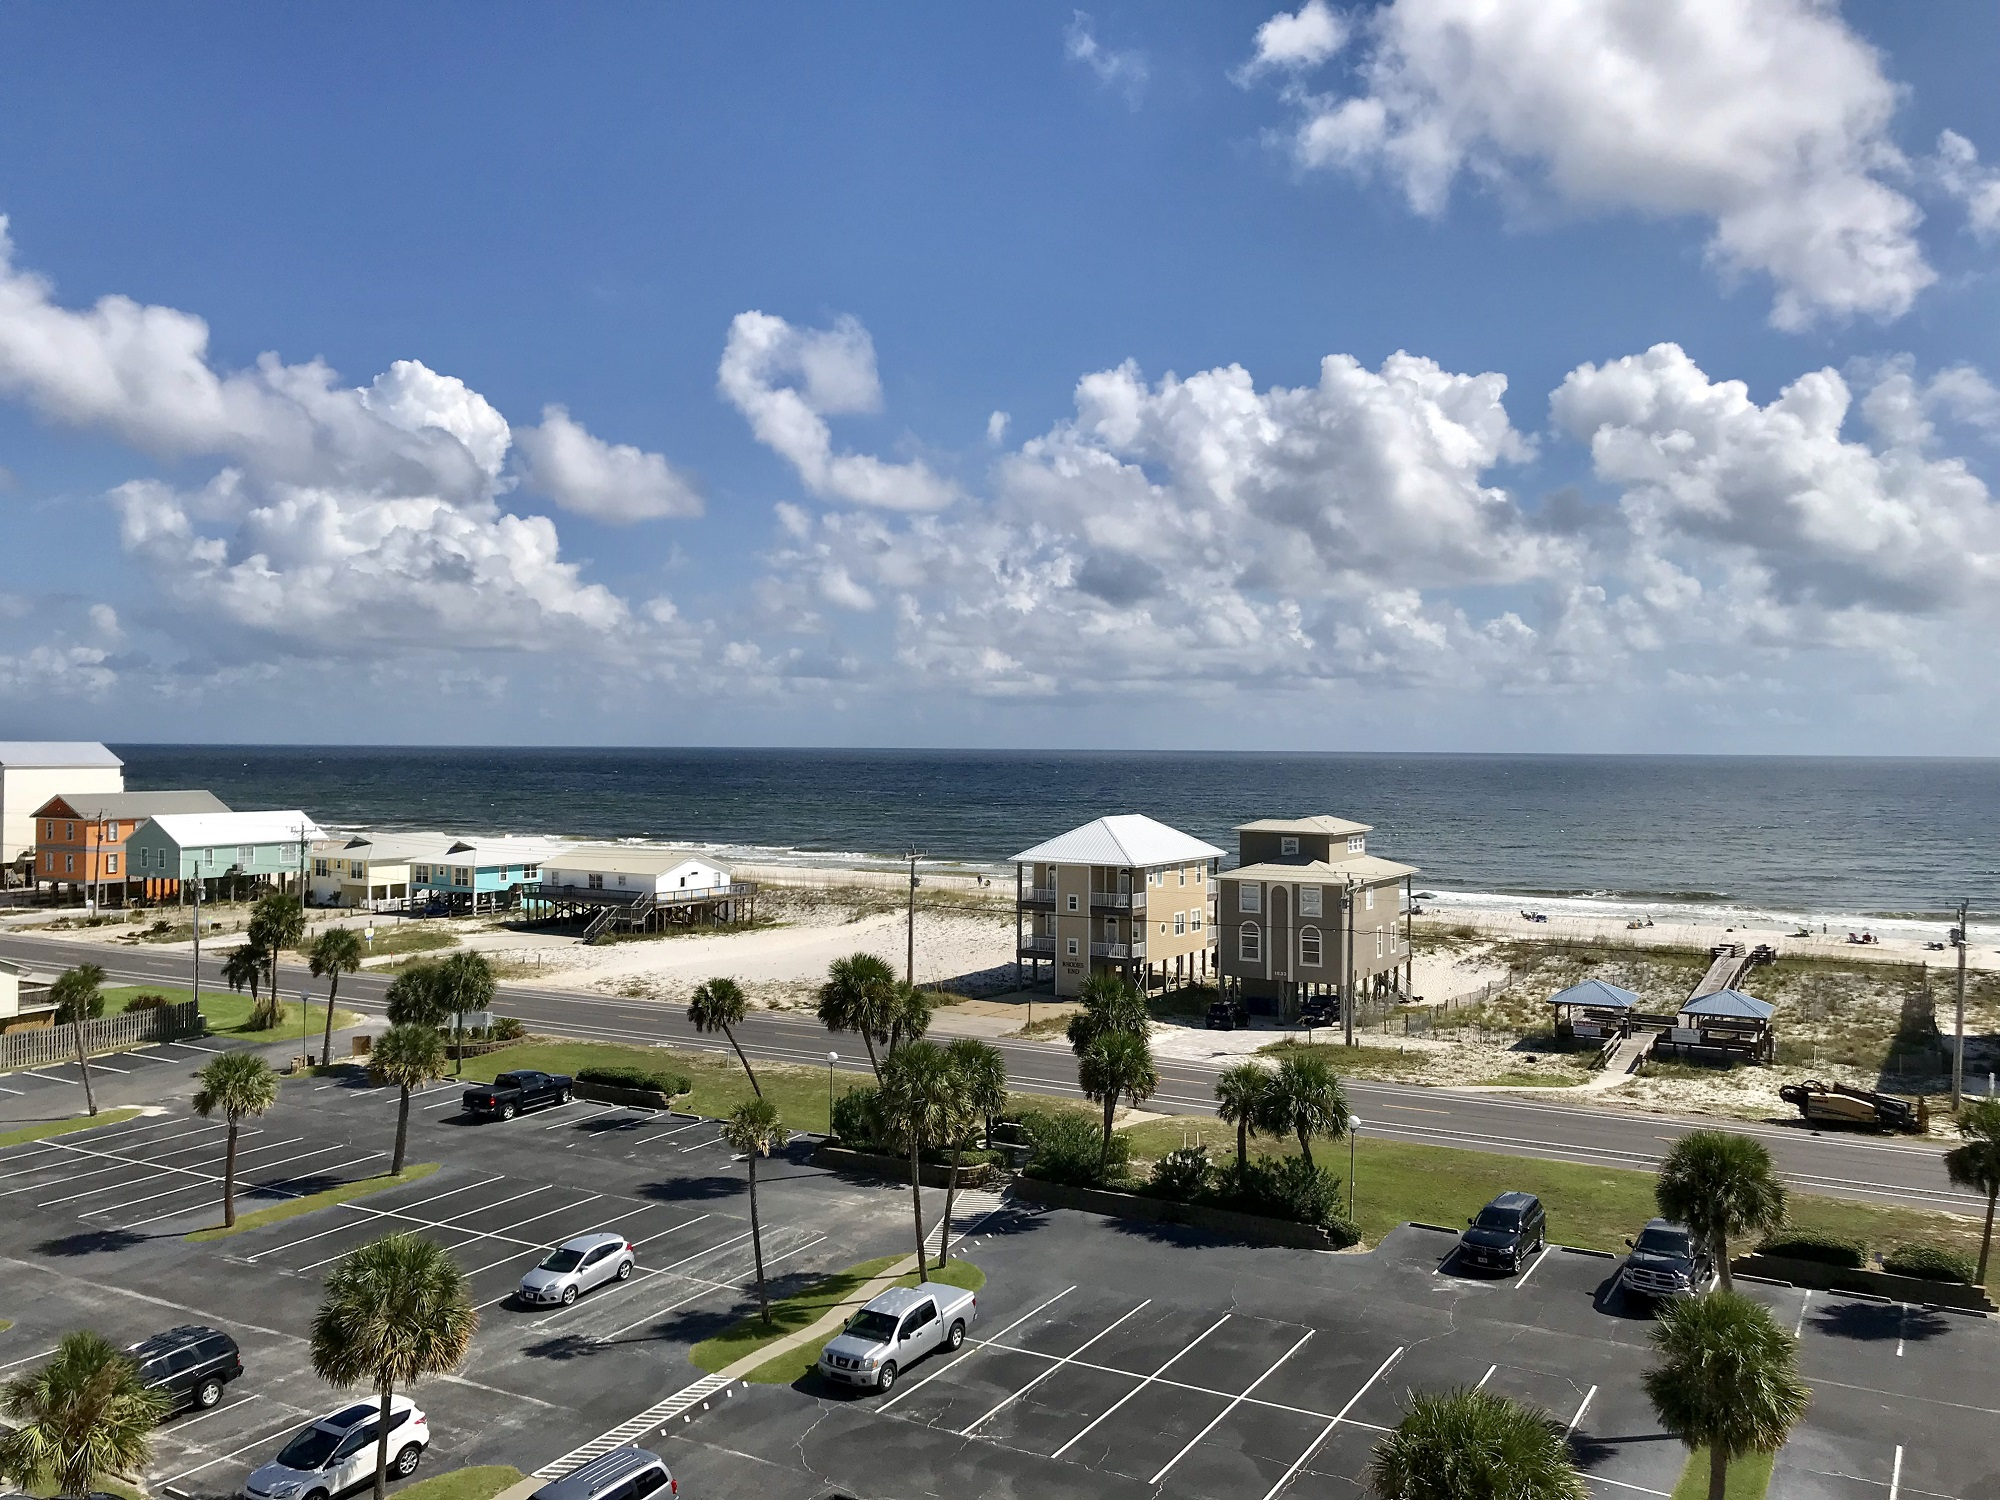 GS Surf & Racquet 704A Condo rental in Gulf Shores Surf and Racquet Club in Gulf Shores Alabama - #34